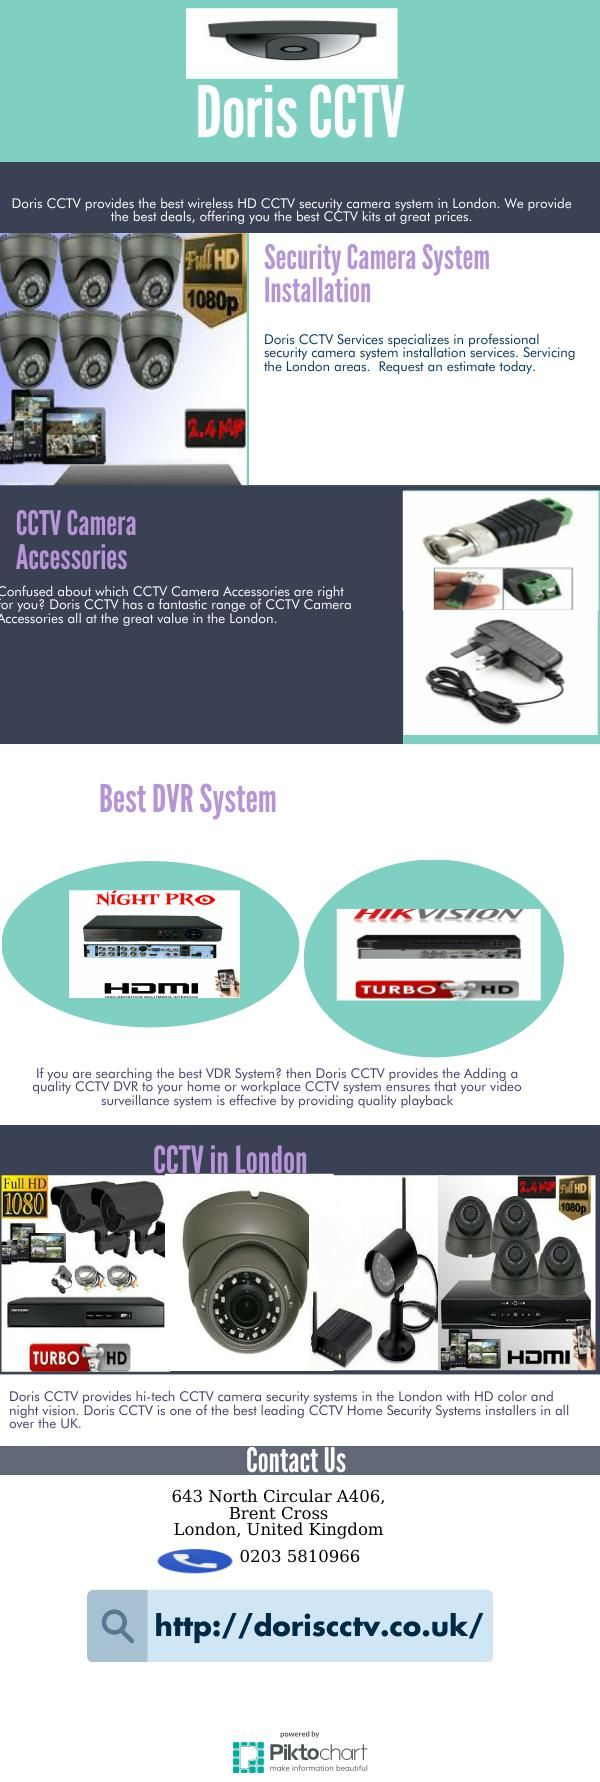 Doris CCTV Services specializes in professional security camera system installation services. Servicing the london areas.